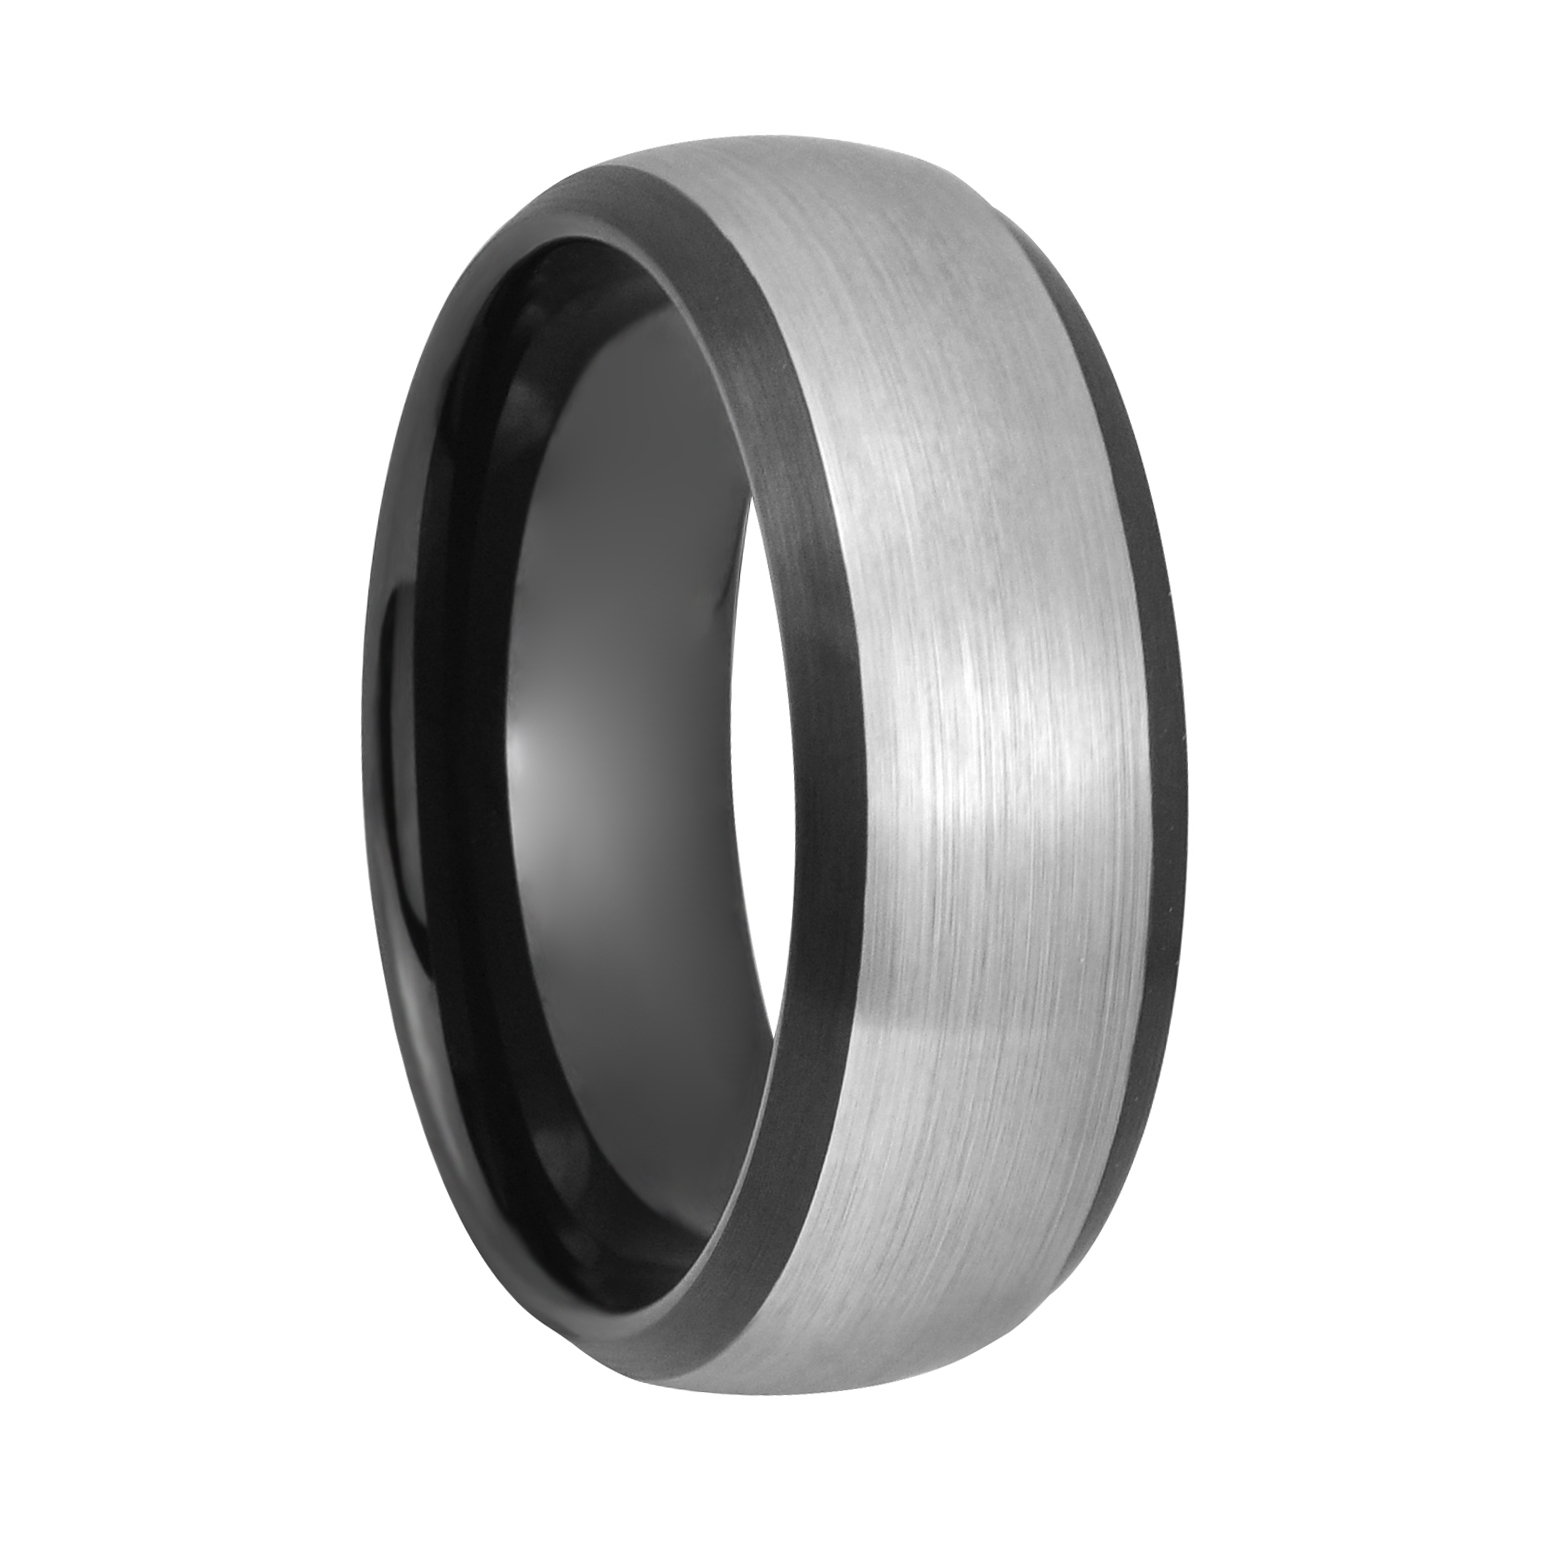 This is a photo of Elliott 42mm Brushed Tungsten Two Tone Enameled Wedding Band Ring